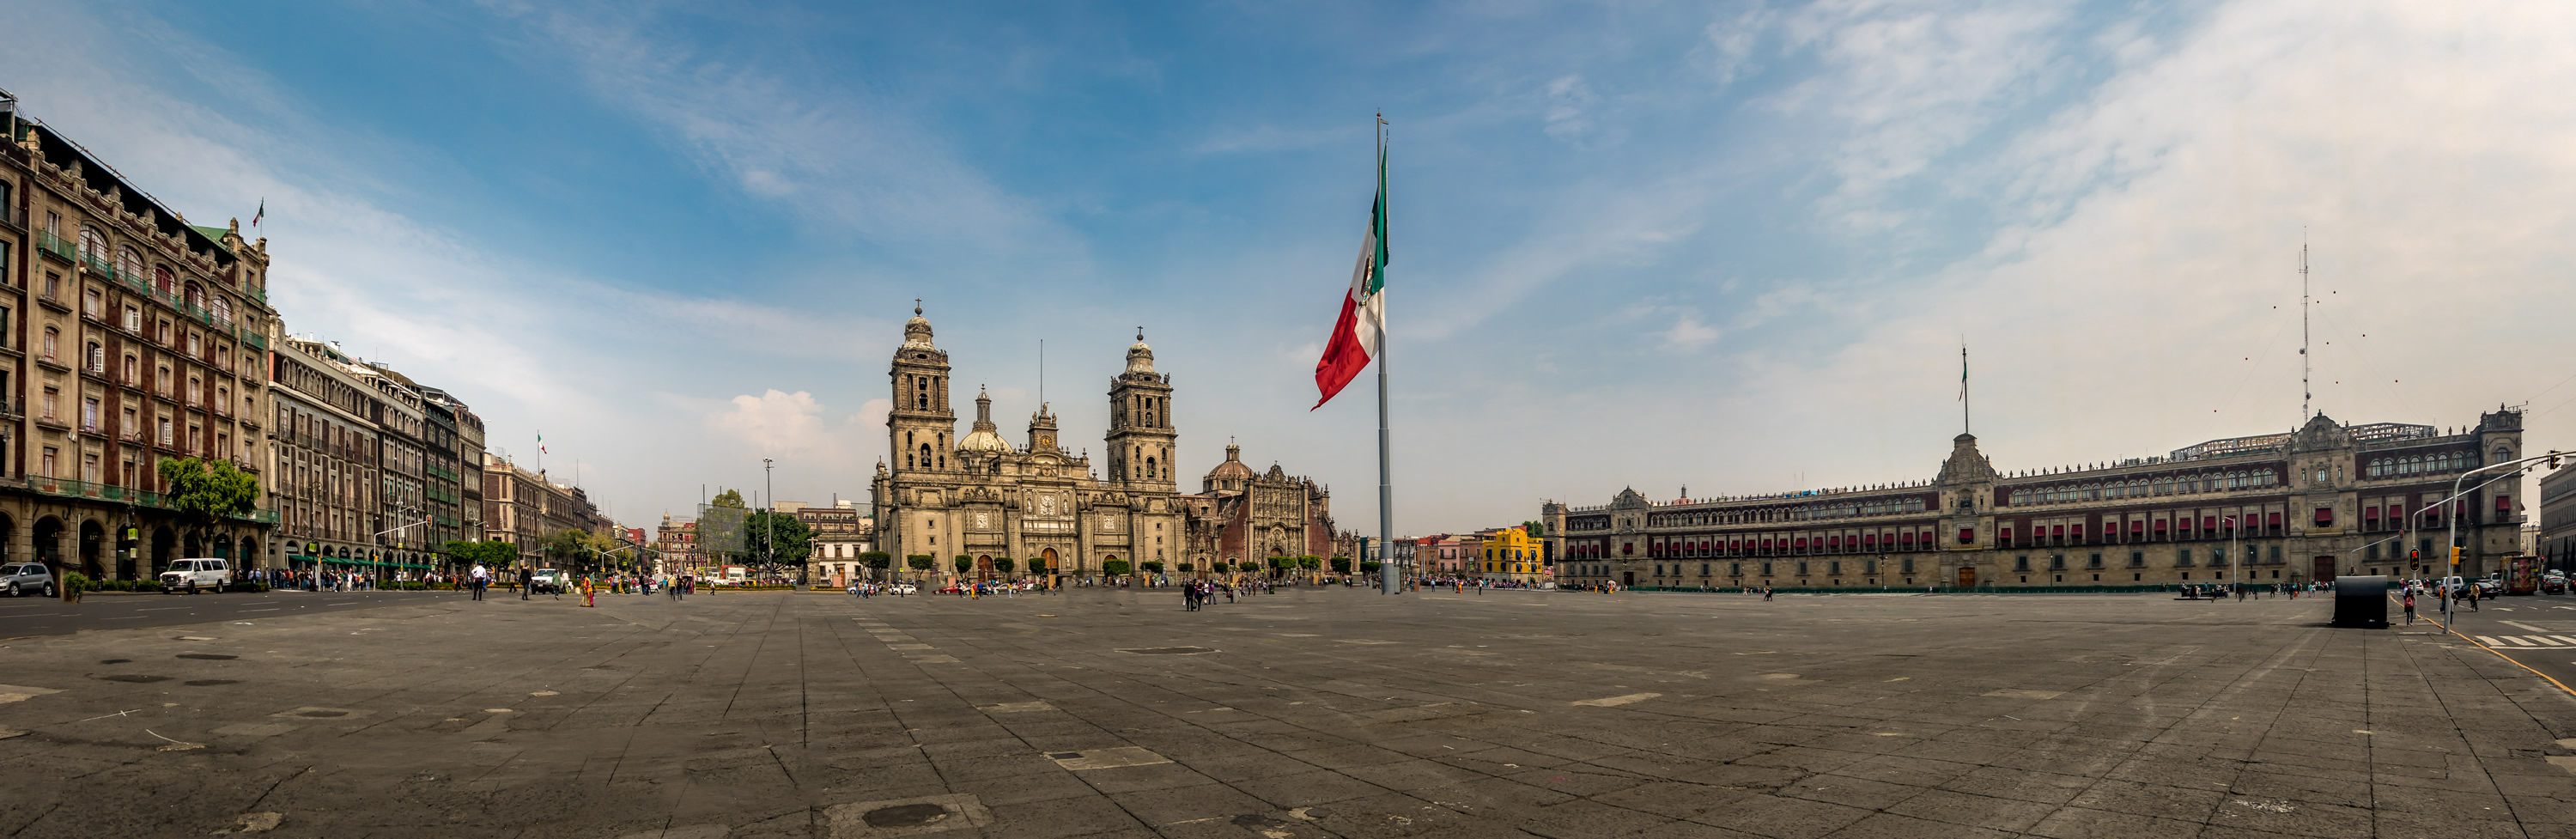 Zocalo Cathedral Mexico City